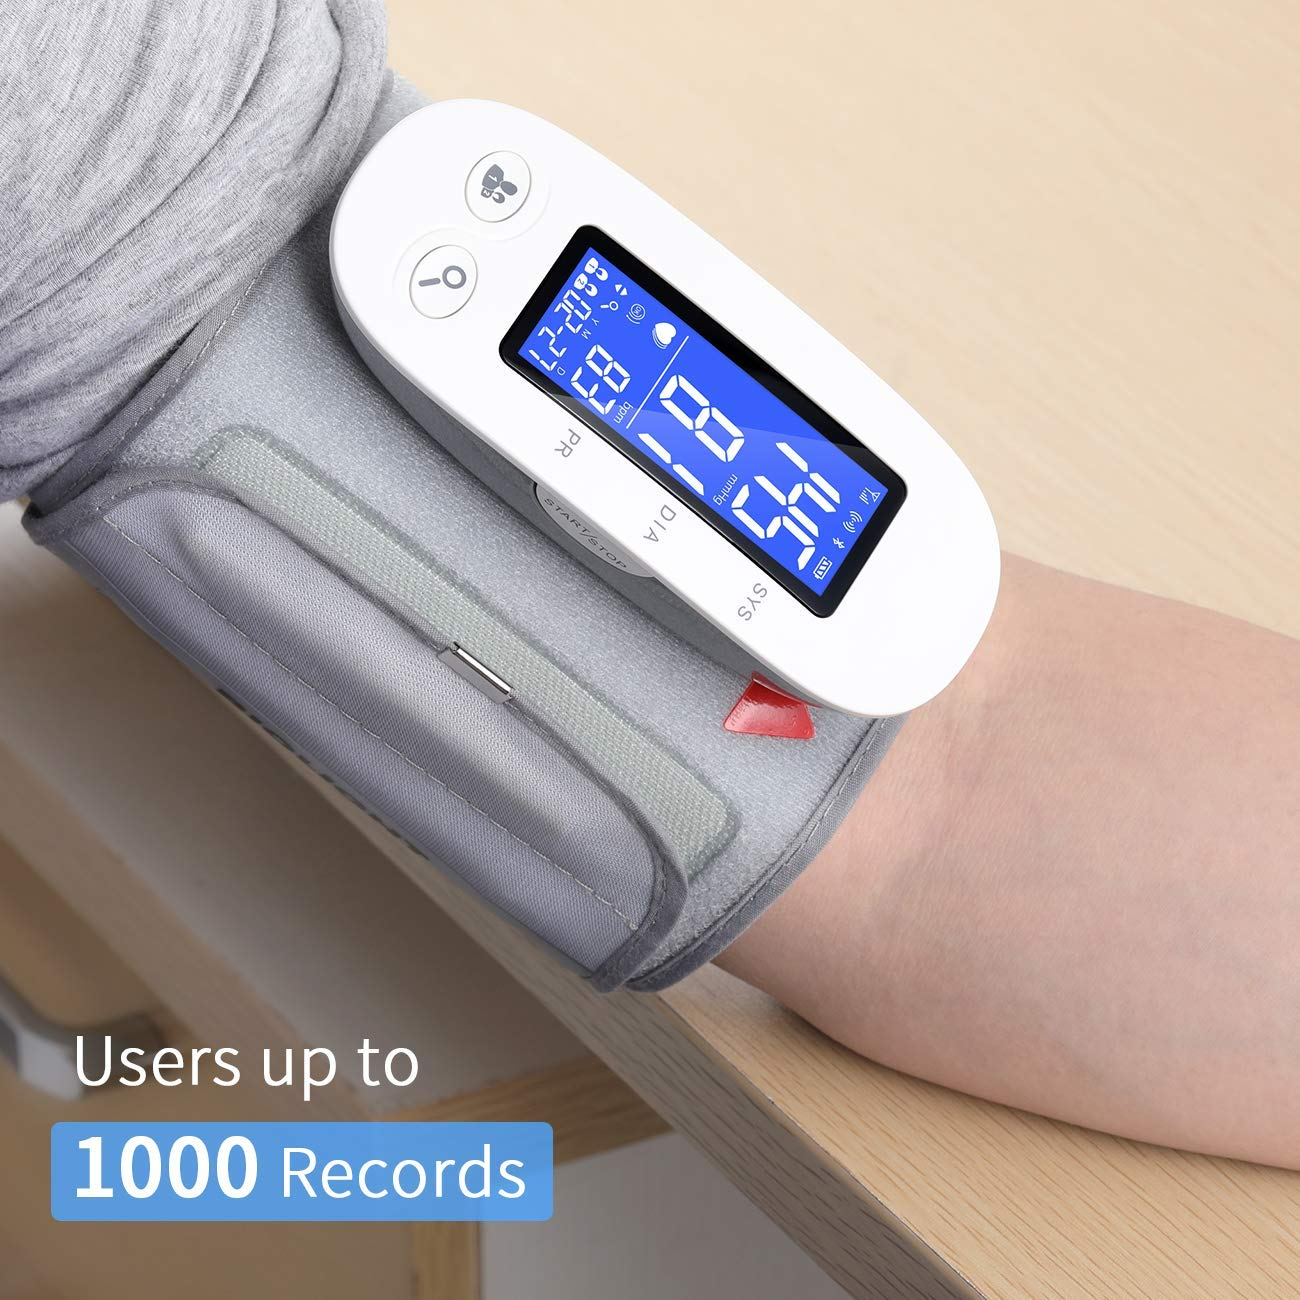 Bluetooth Blood Pressure Monitor, Digital Automatic Blood Pressure Cuff Wrist, FDA Approved Large Screen 2*500 Memory Blood Pressure Machine, Upper Arm BP Monitor Cuff with APP for Apple iOS & Android by PRYMAX (Image #6)